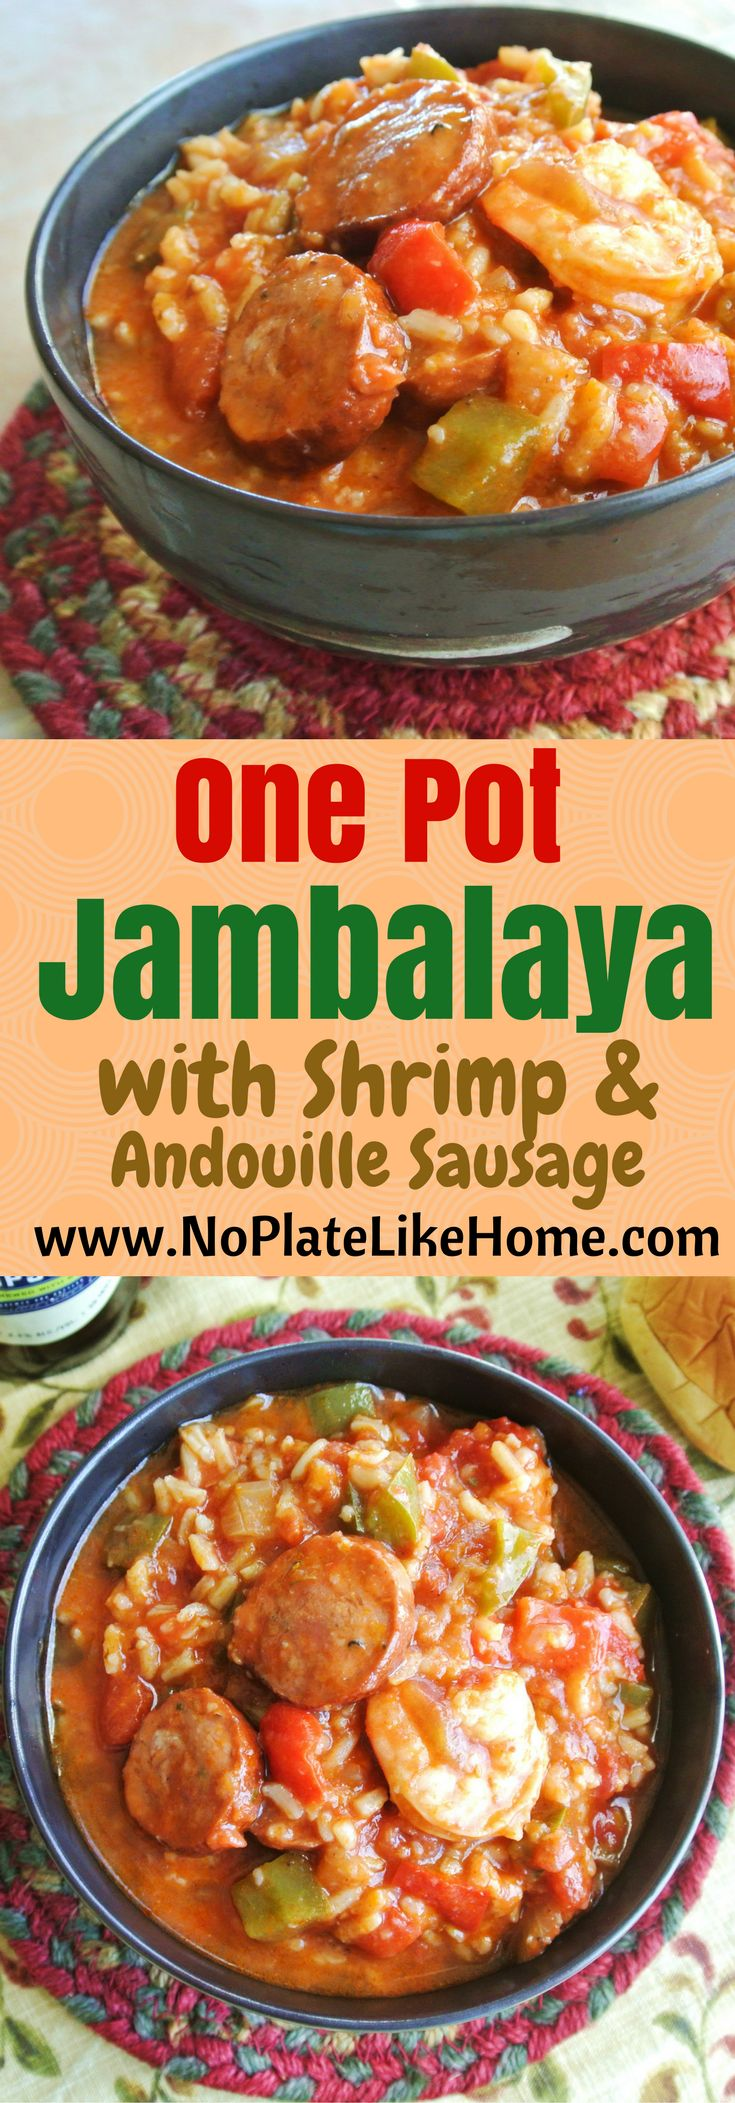 An easy gluten free, spicy one pot Jambalaya recipe with shrimp and Andouille sausage. It is a New Orleans homemade meal with creole spices your family will love. The leftovers taste even better! Pin for later!